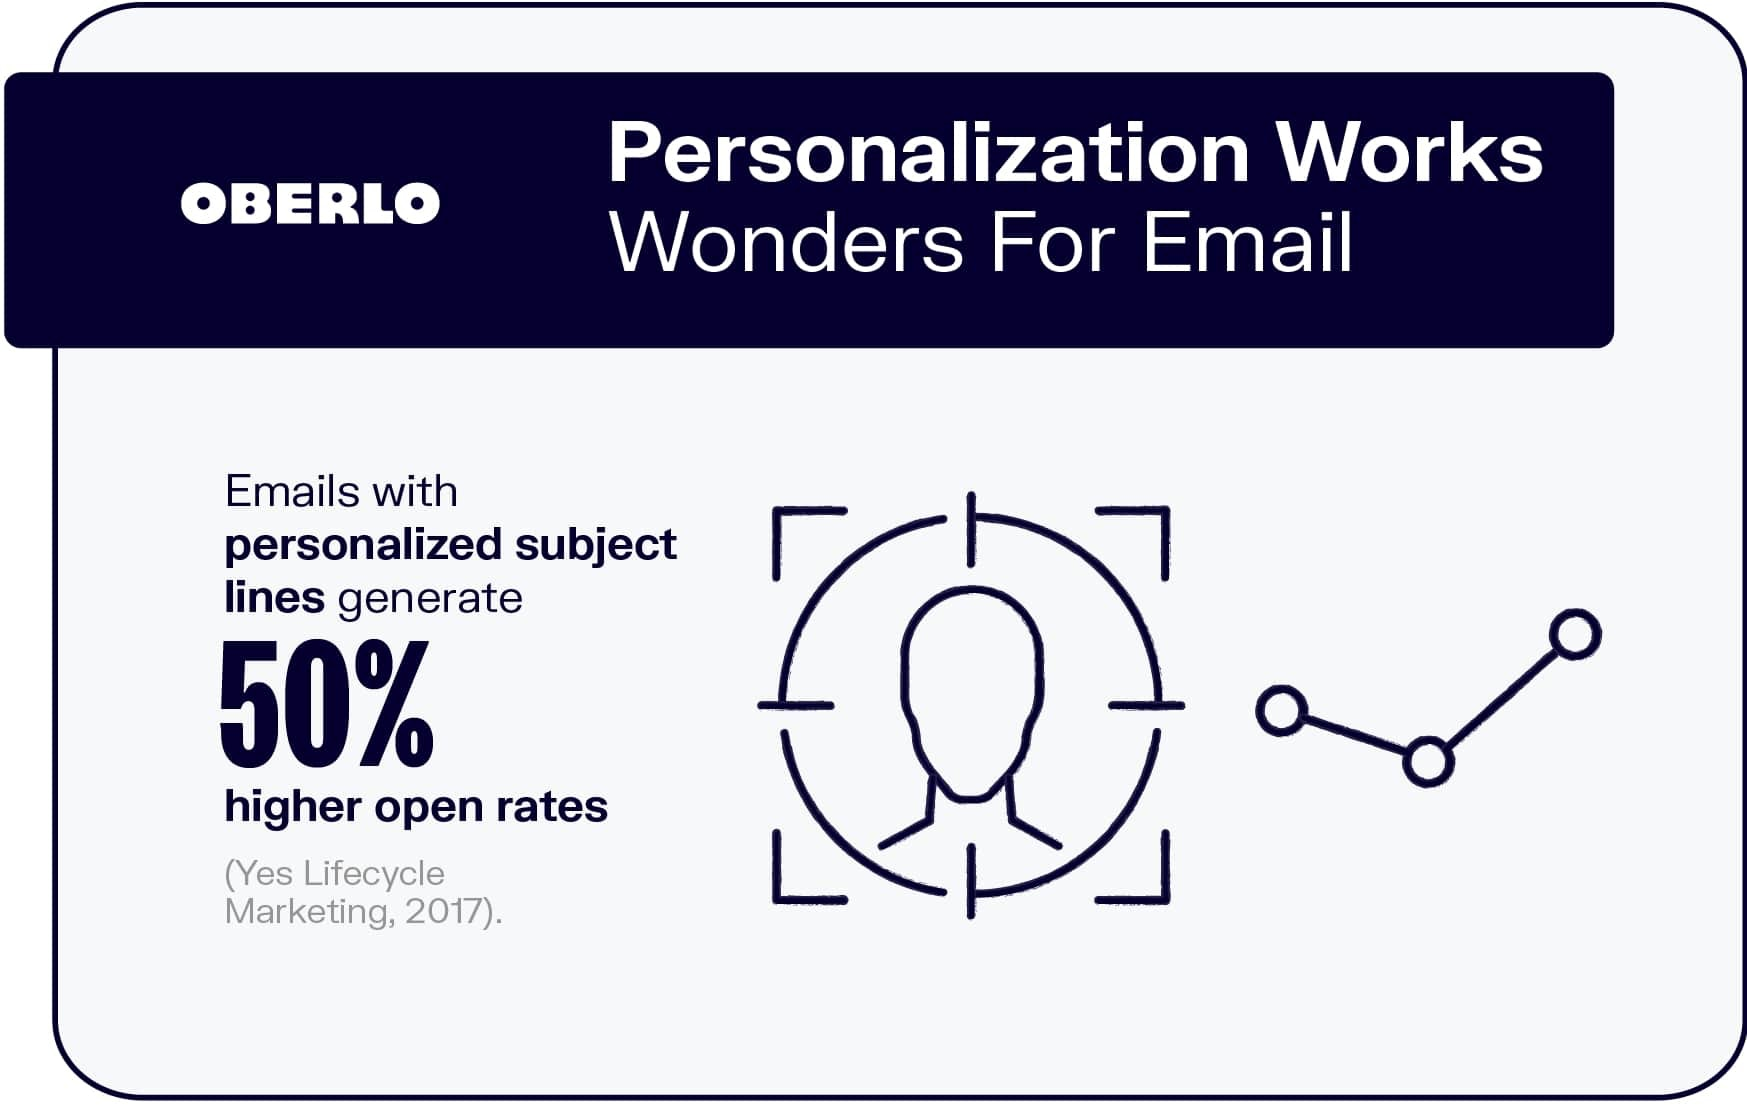 Personalization Works Wonders For Email